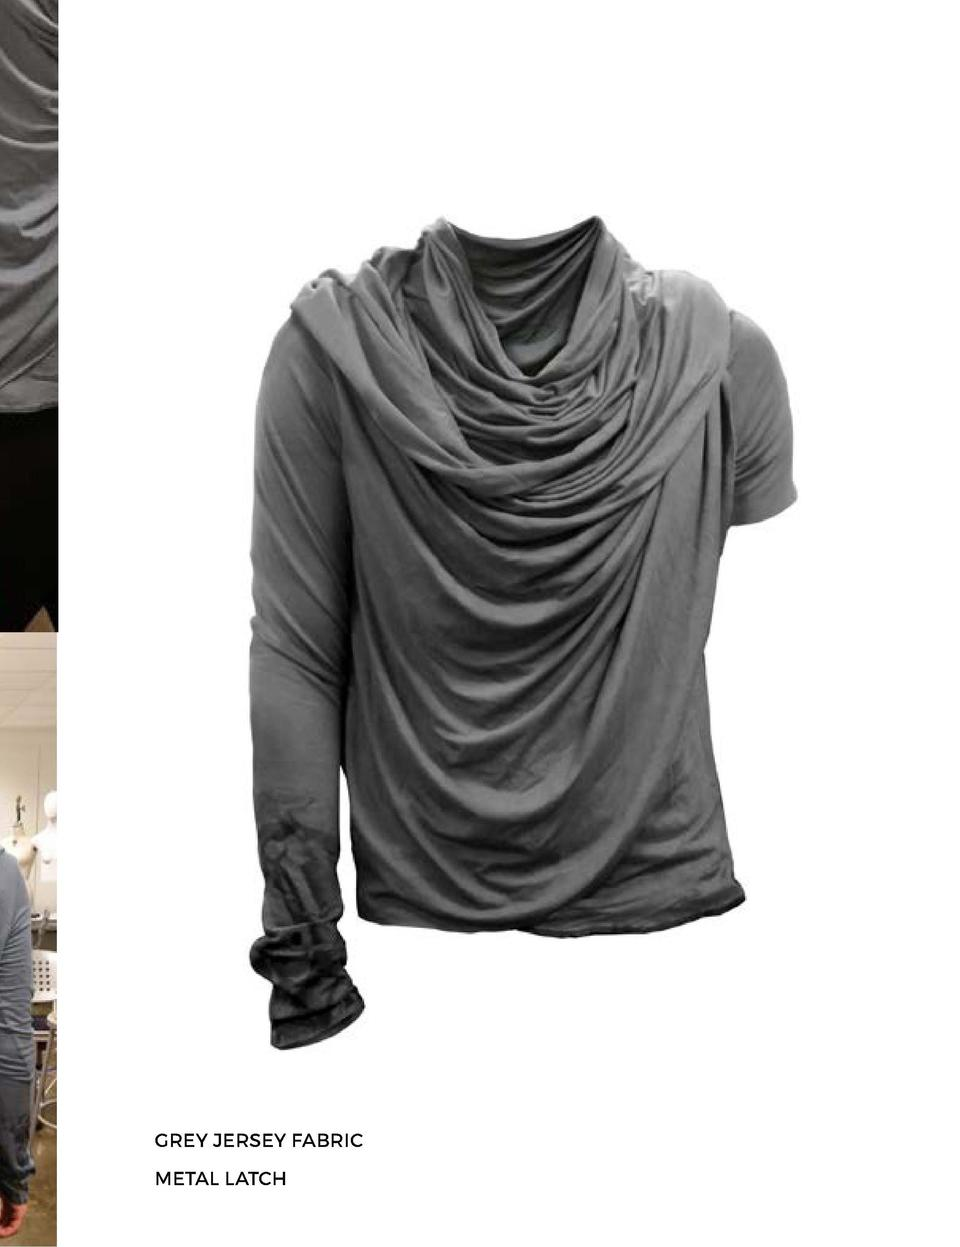 THE DRAPED LOCK HOODIE GREY JERSEY FABRIC METAL LATCH       242